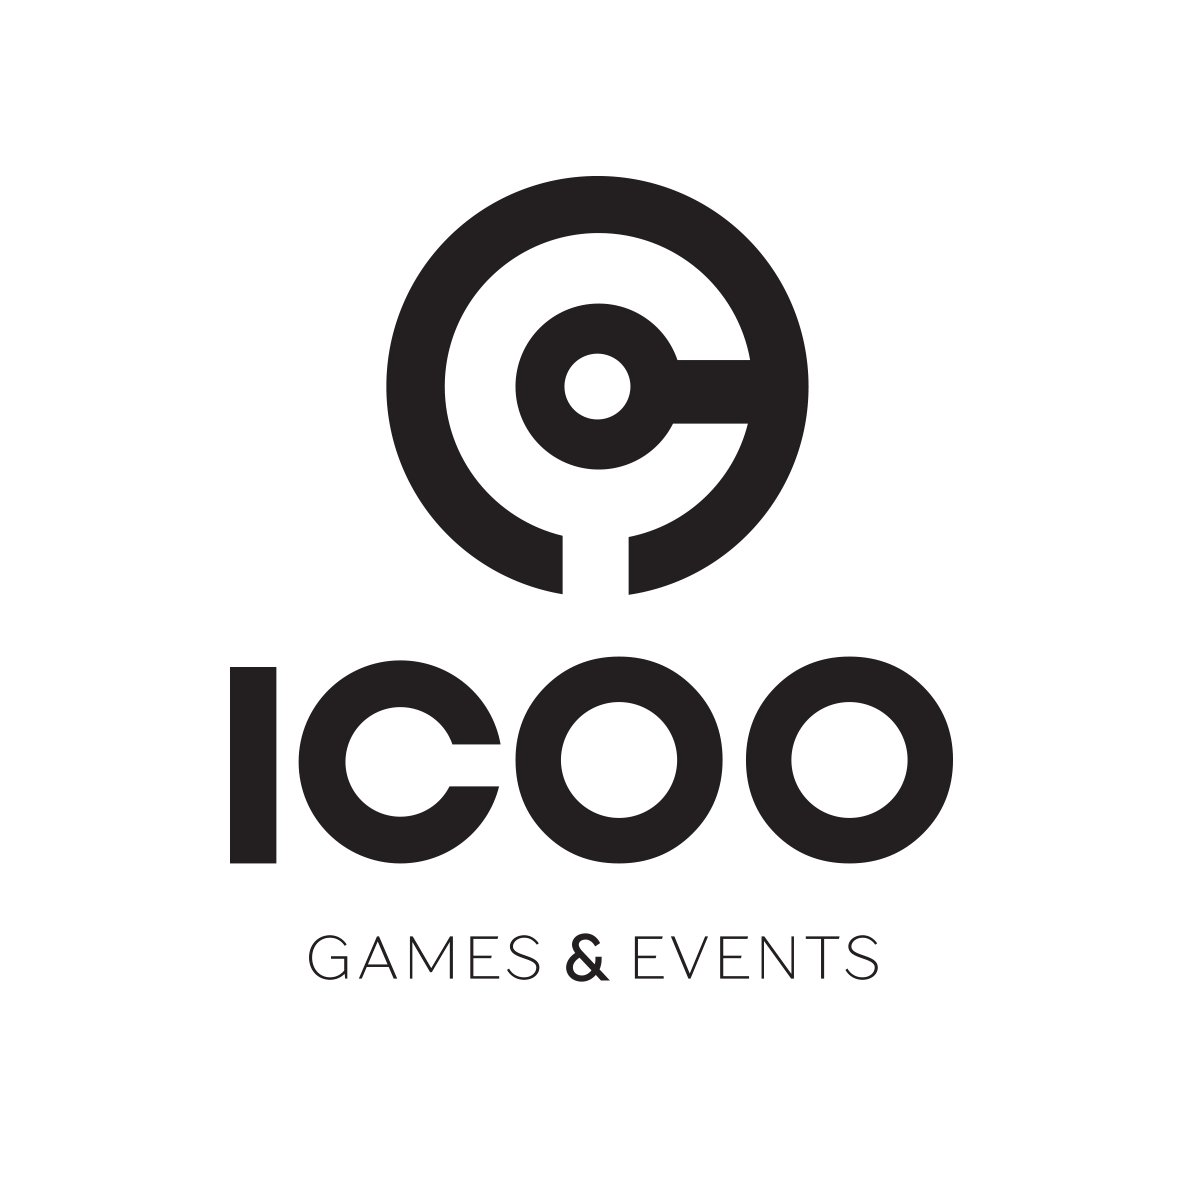 Escape Game Nevers ICOO Games & Events